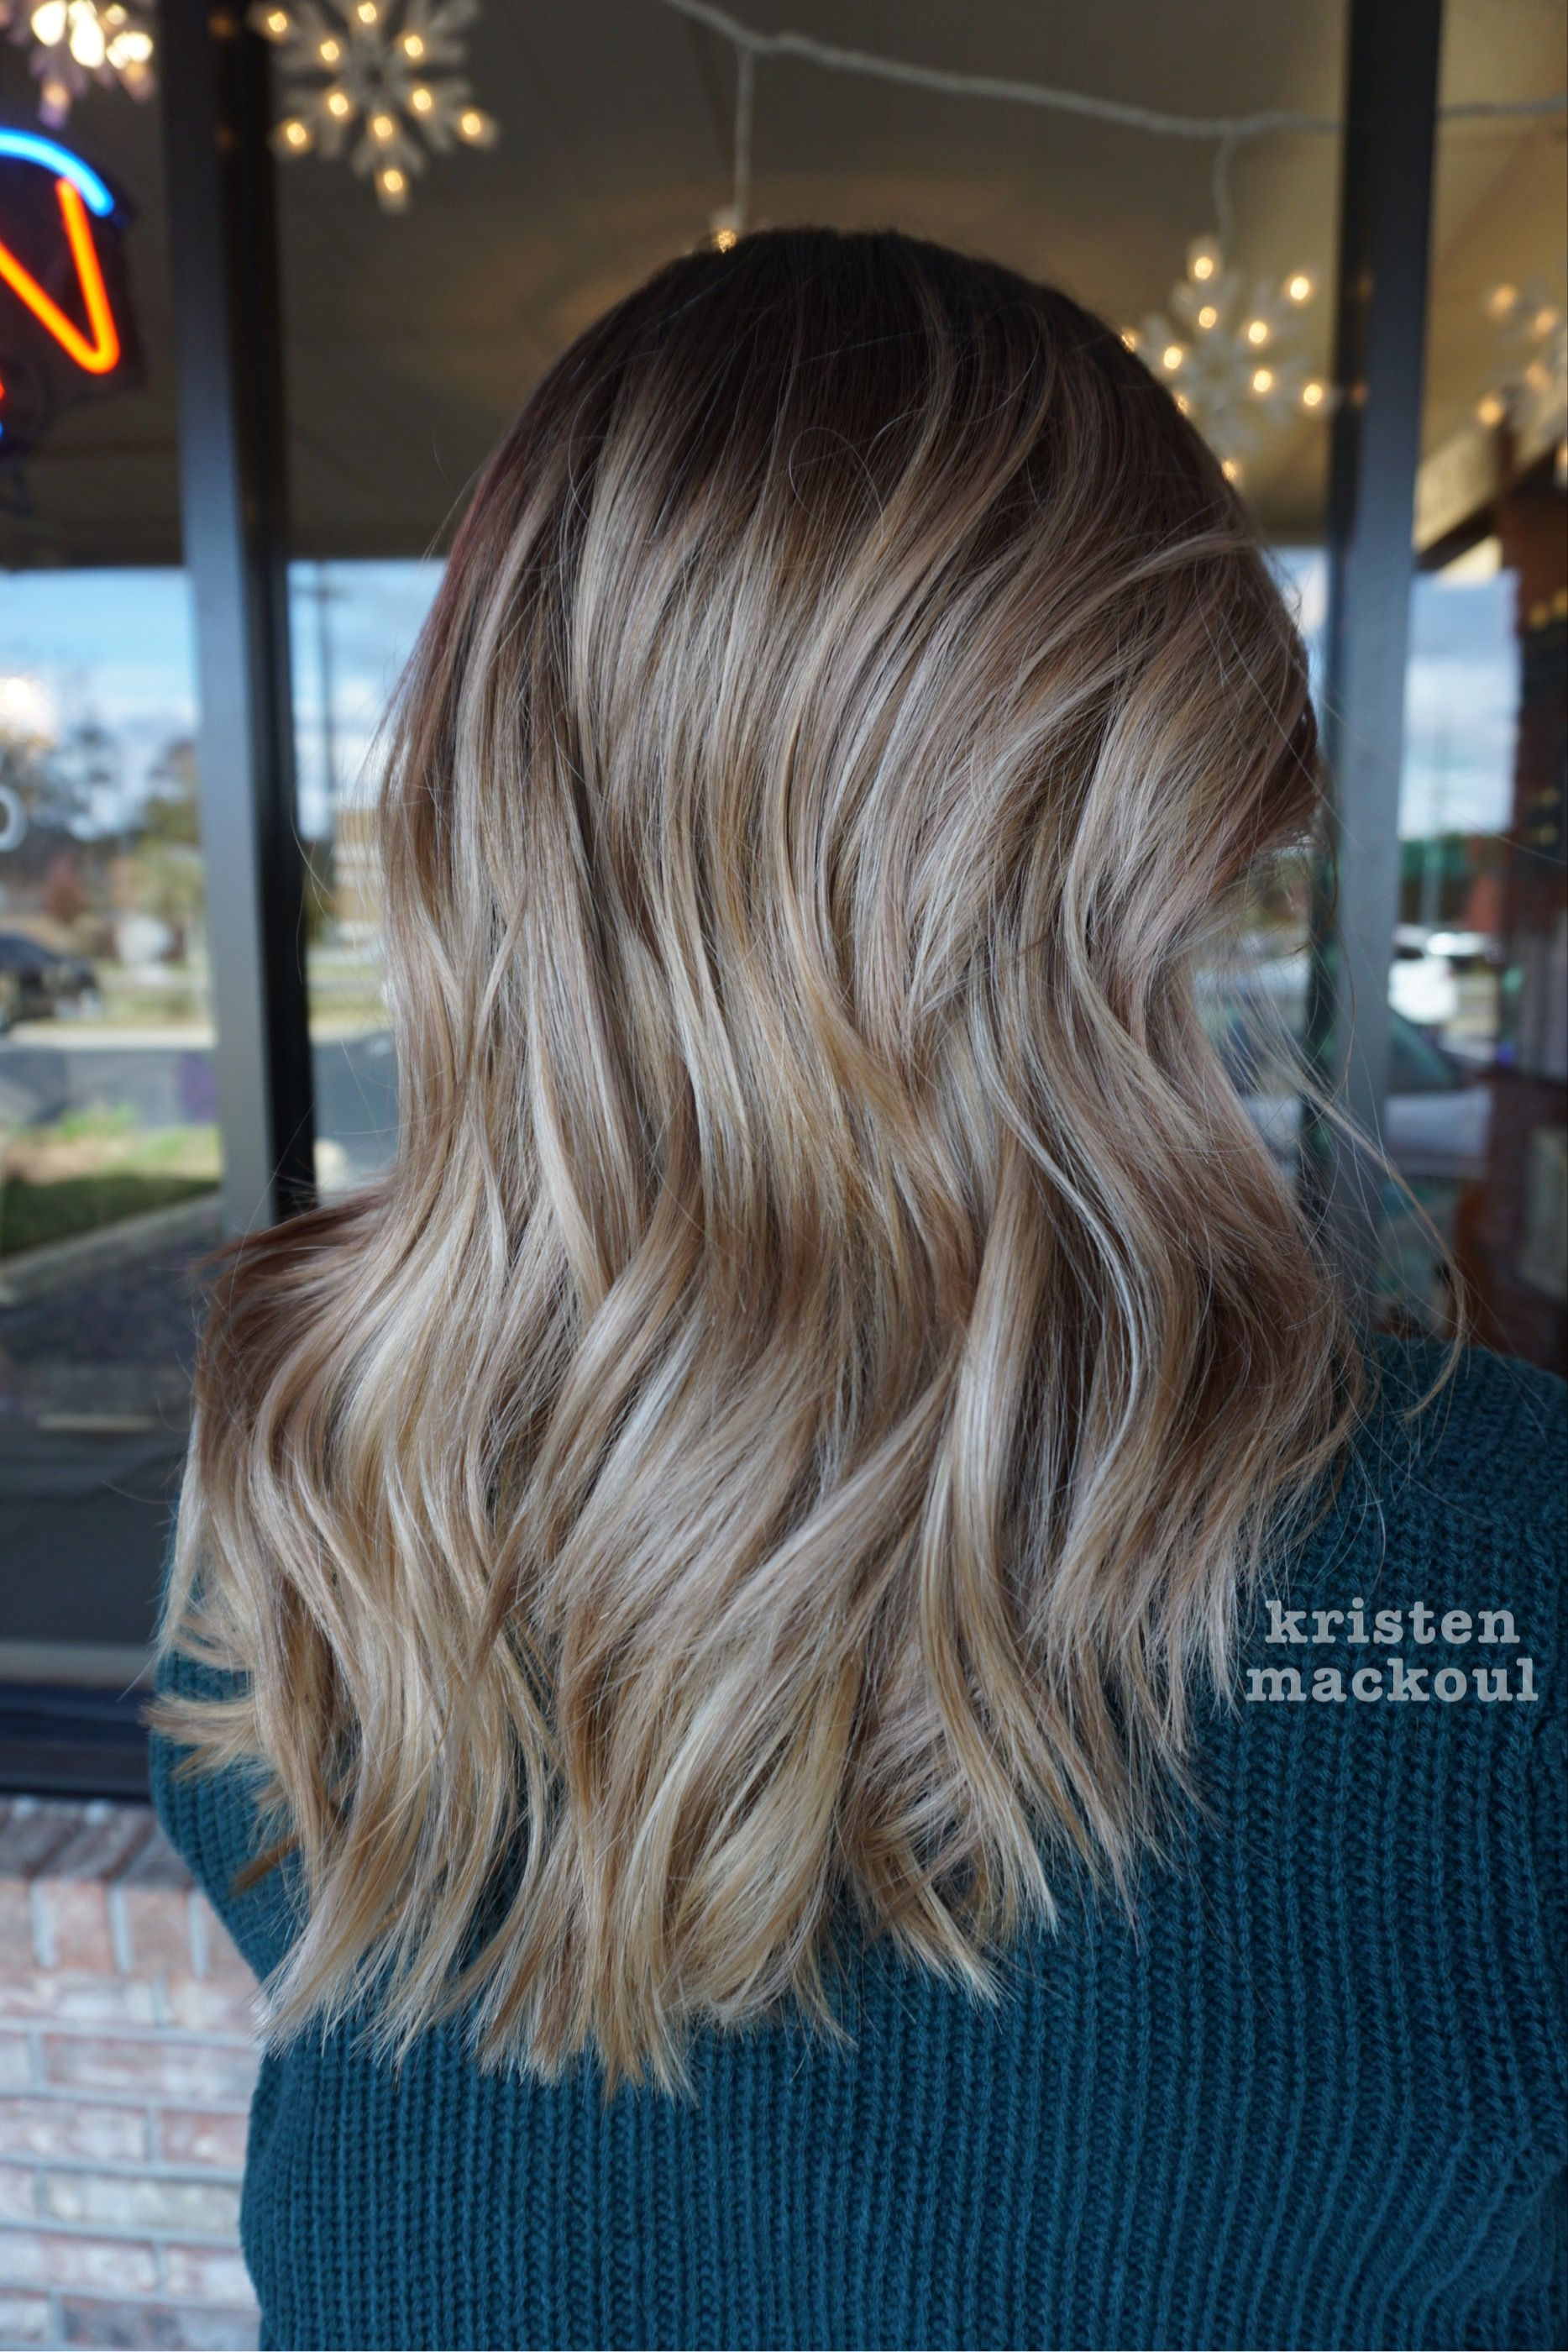 Pin By Kristen Mackoul On Kristen Mackoul Hair Pinterest Bronde